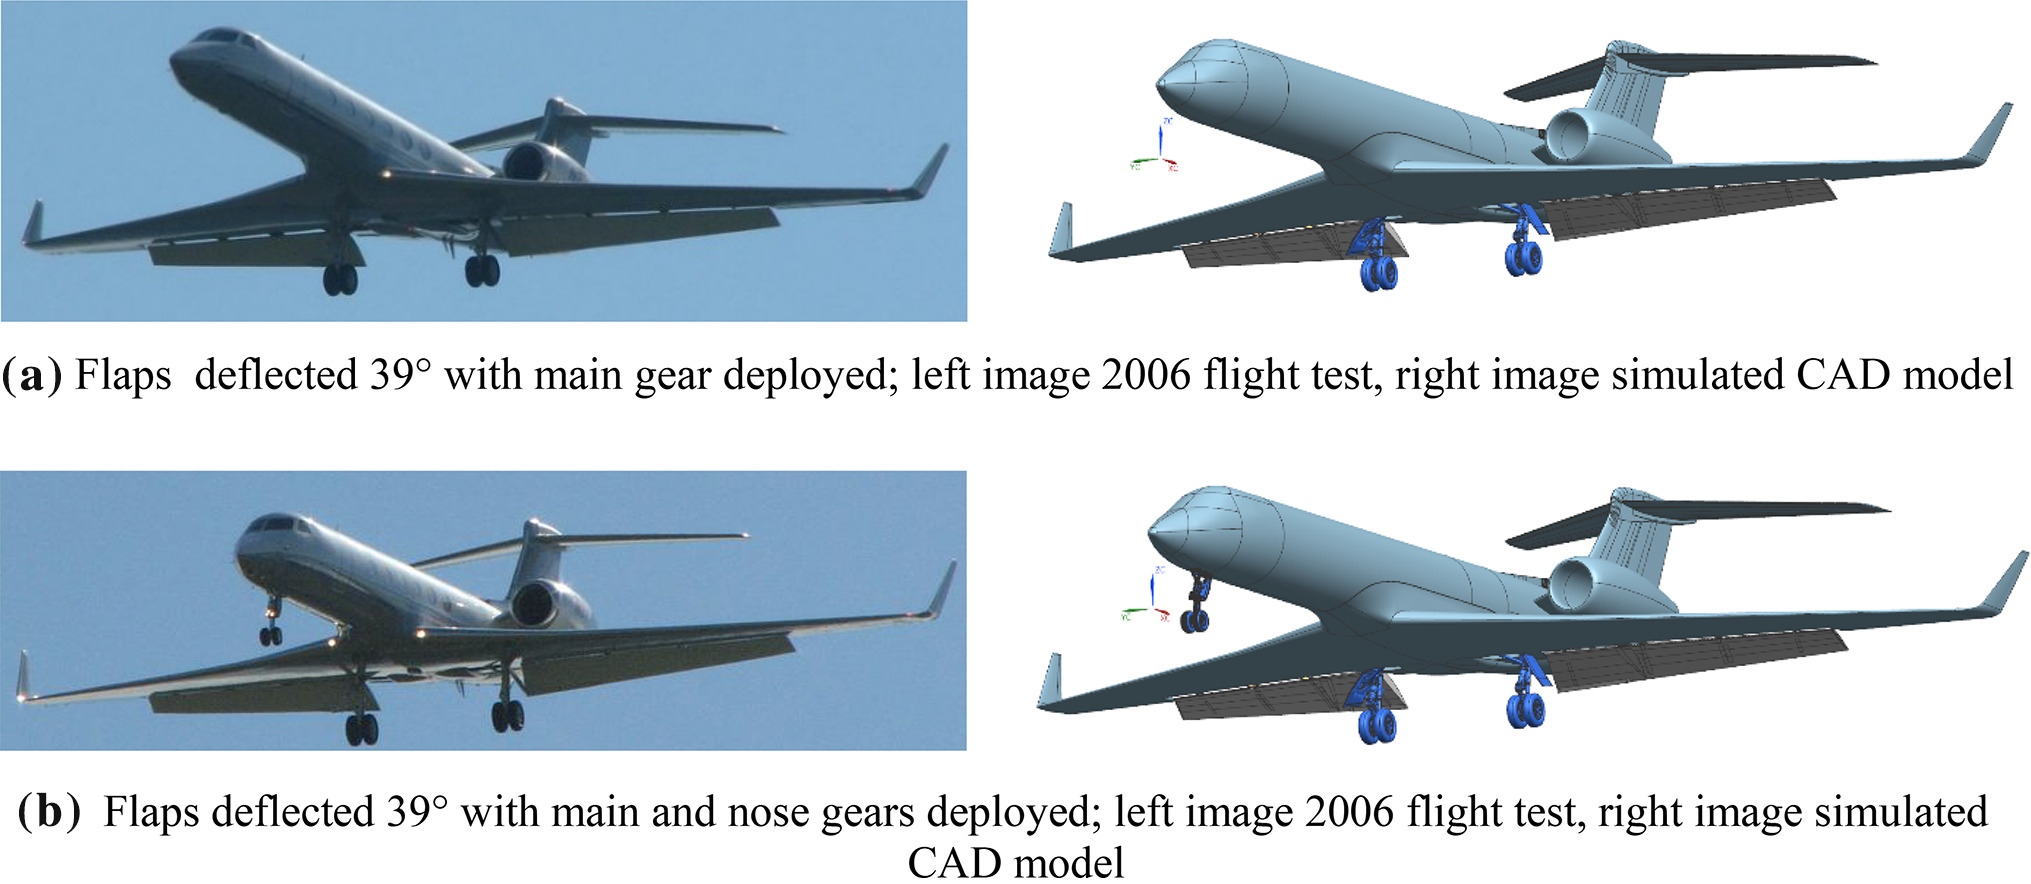 Toward noise certification during design: airframe noise simulations